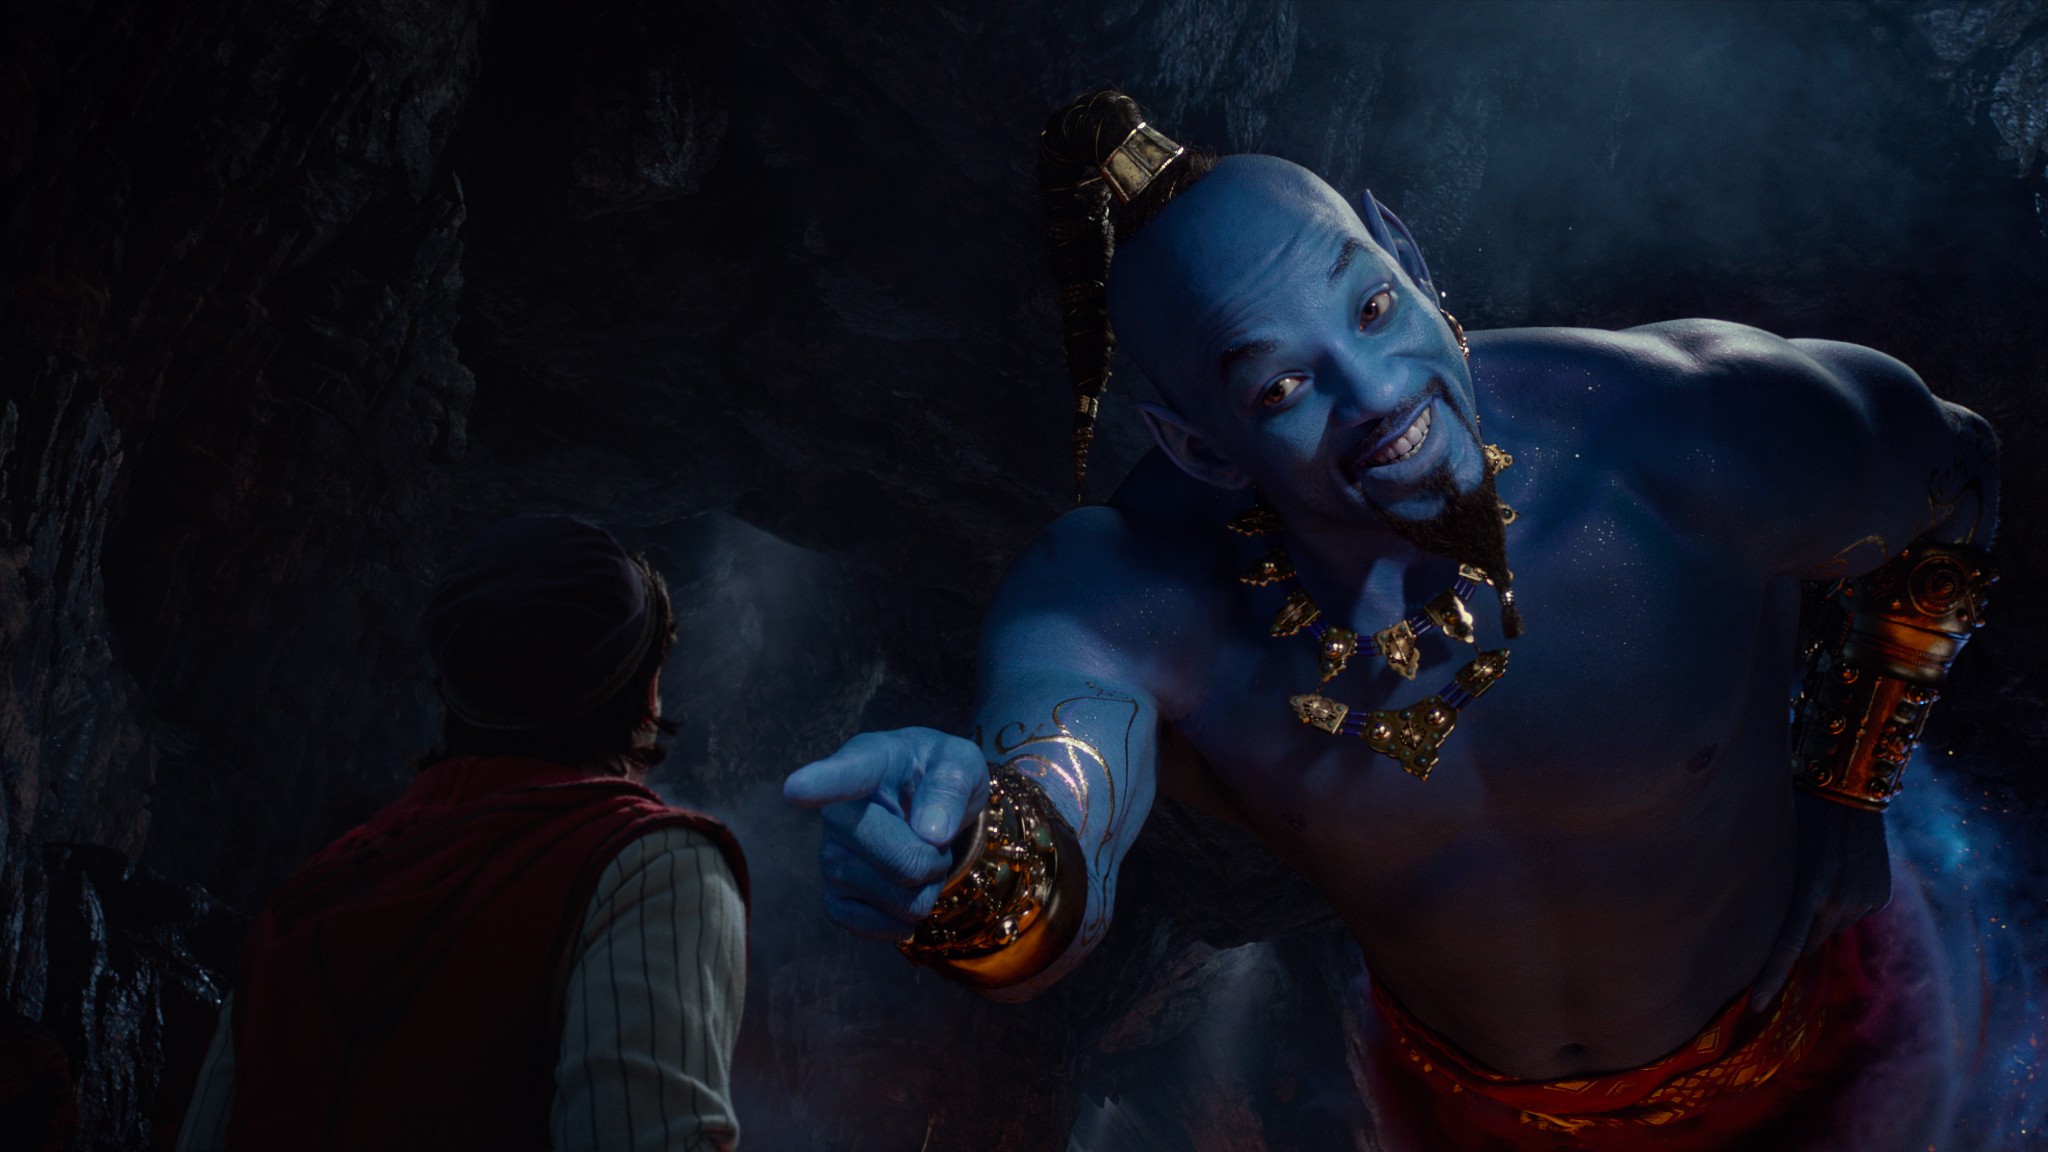 Movie Poster 2019: Genie In Aladdin 2019, HD Movies, 4k Wallpapers, Images